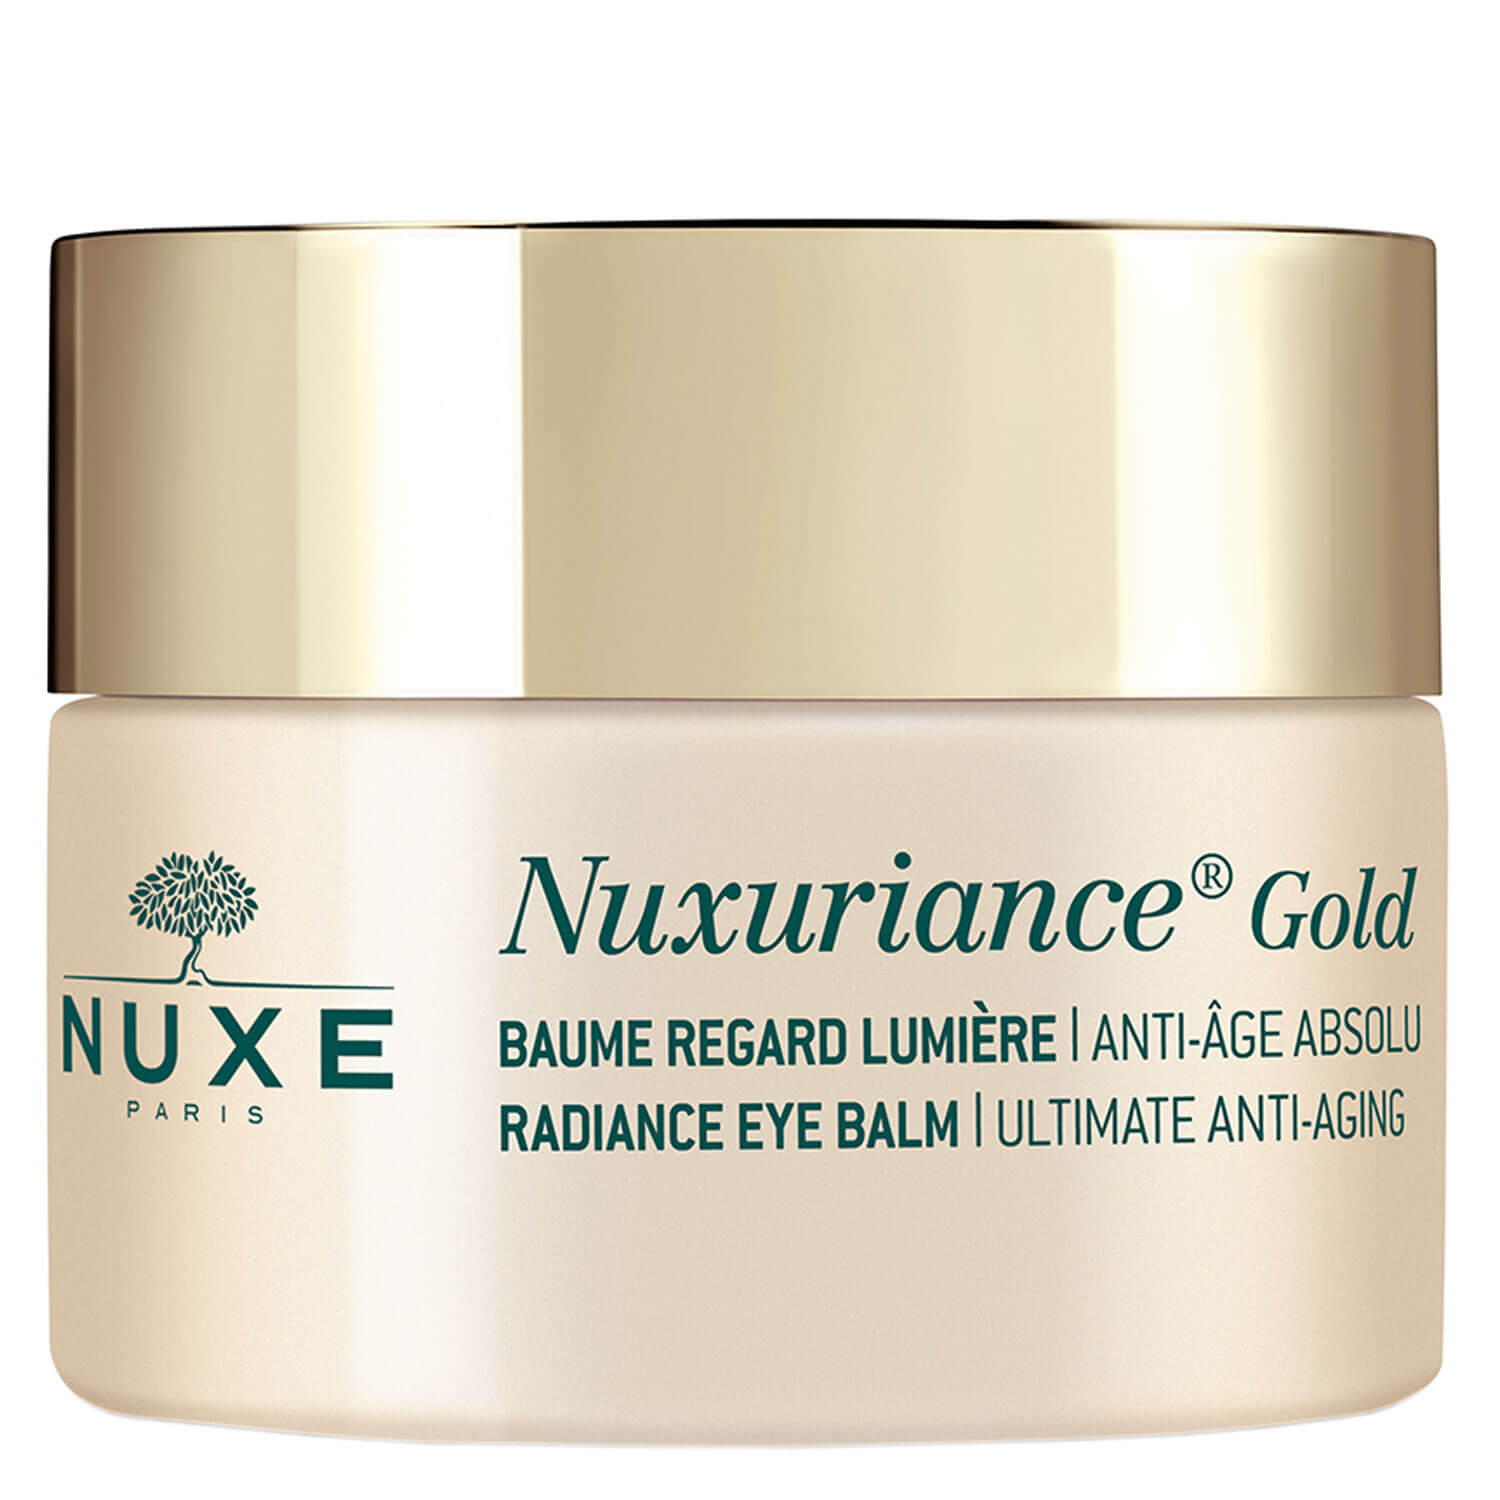 Nuxuriance Gold - Baume Regard